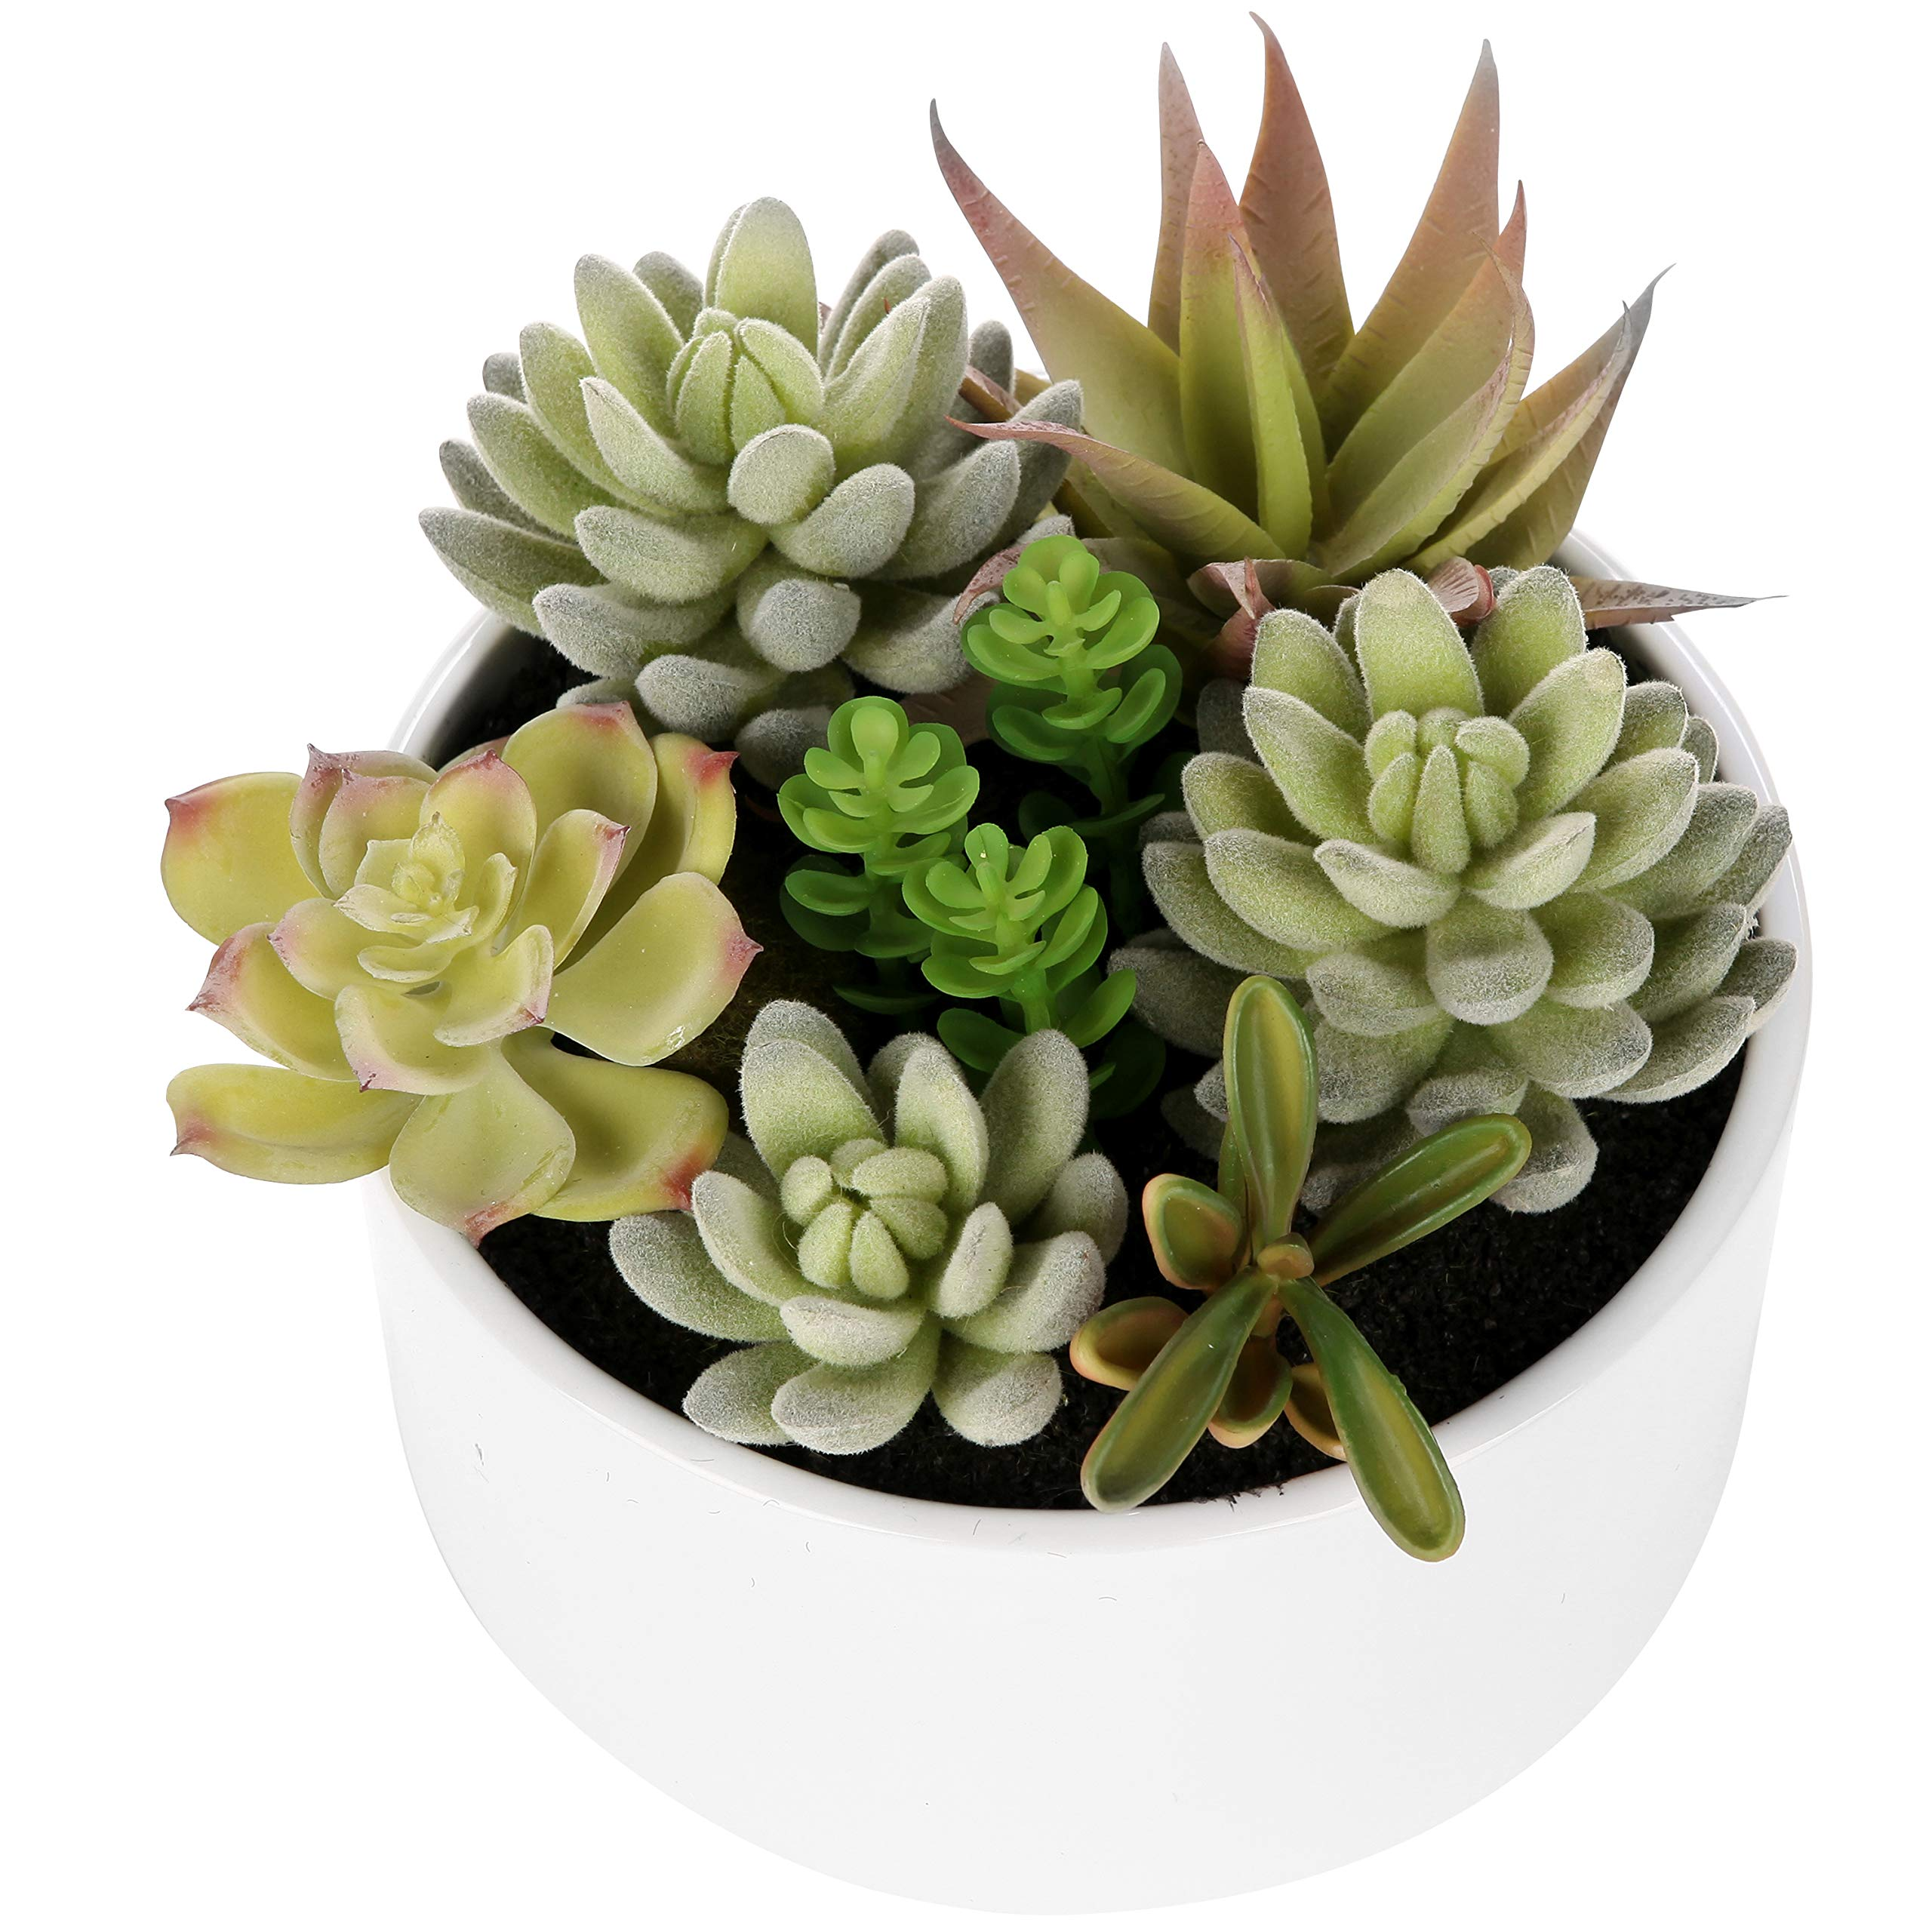 MyGift Decorative Round Faux Potted Succulents/Artificial Plant in 6 inch Glazed White Ceramic Flower Pot